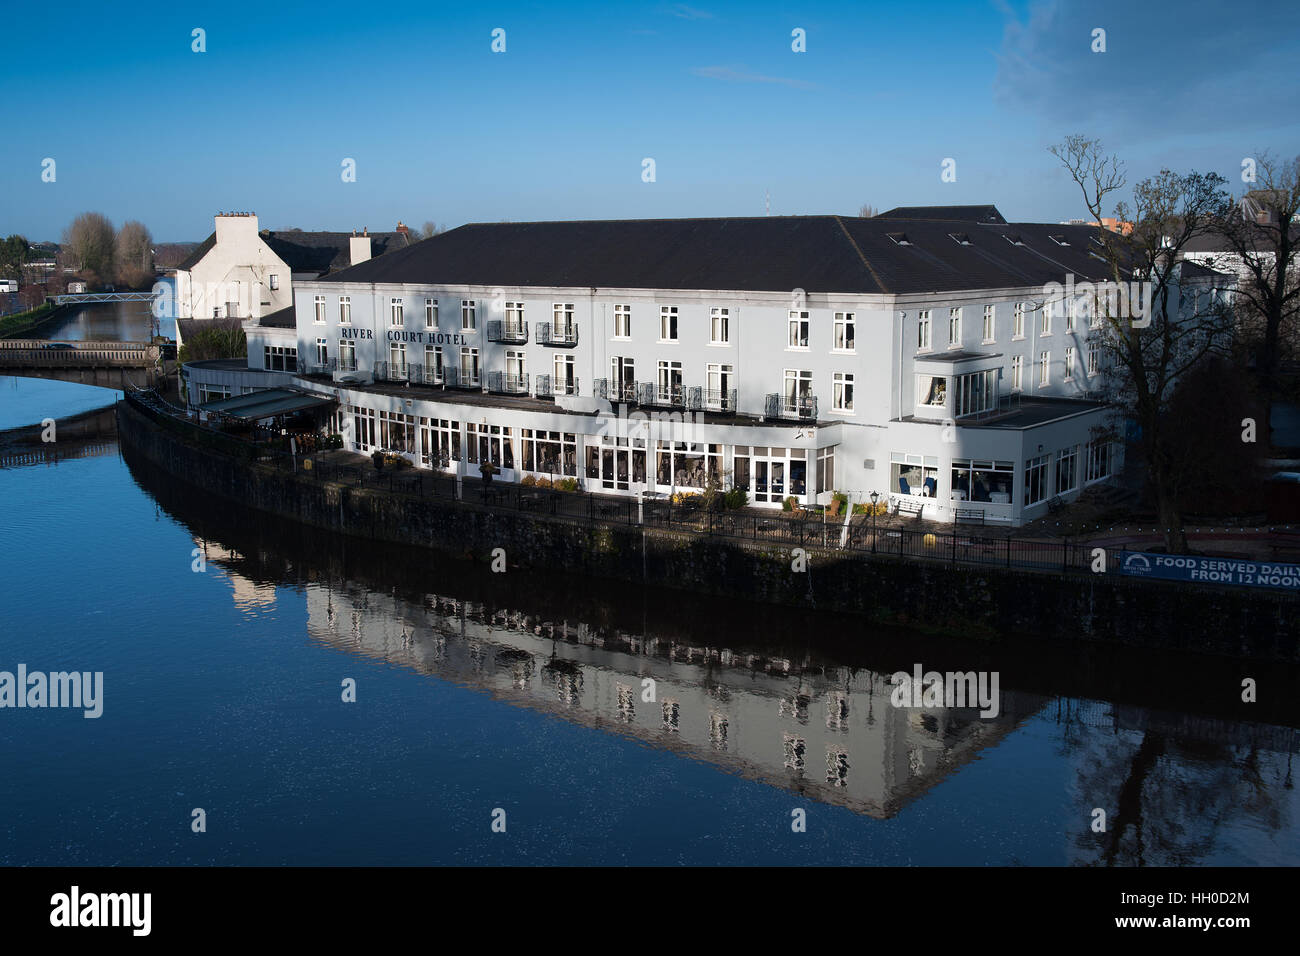 The River Court Hotel, Kilkenny, Ireland overlooking the River Nore, Kilkenny - Stock Image